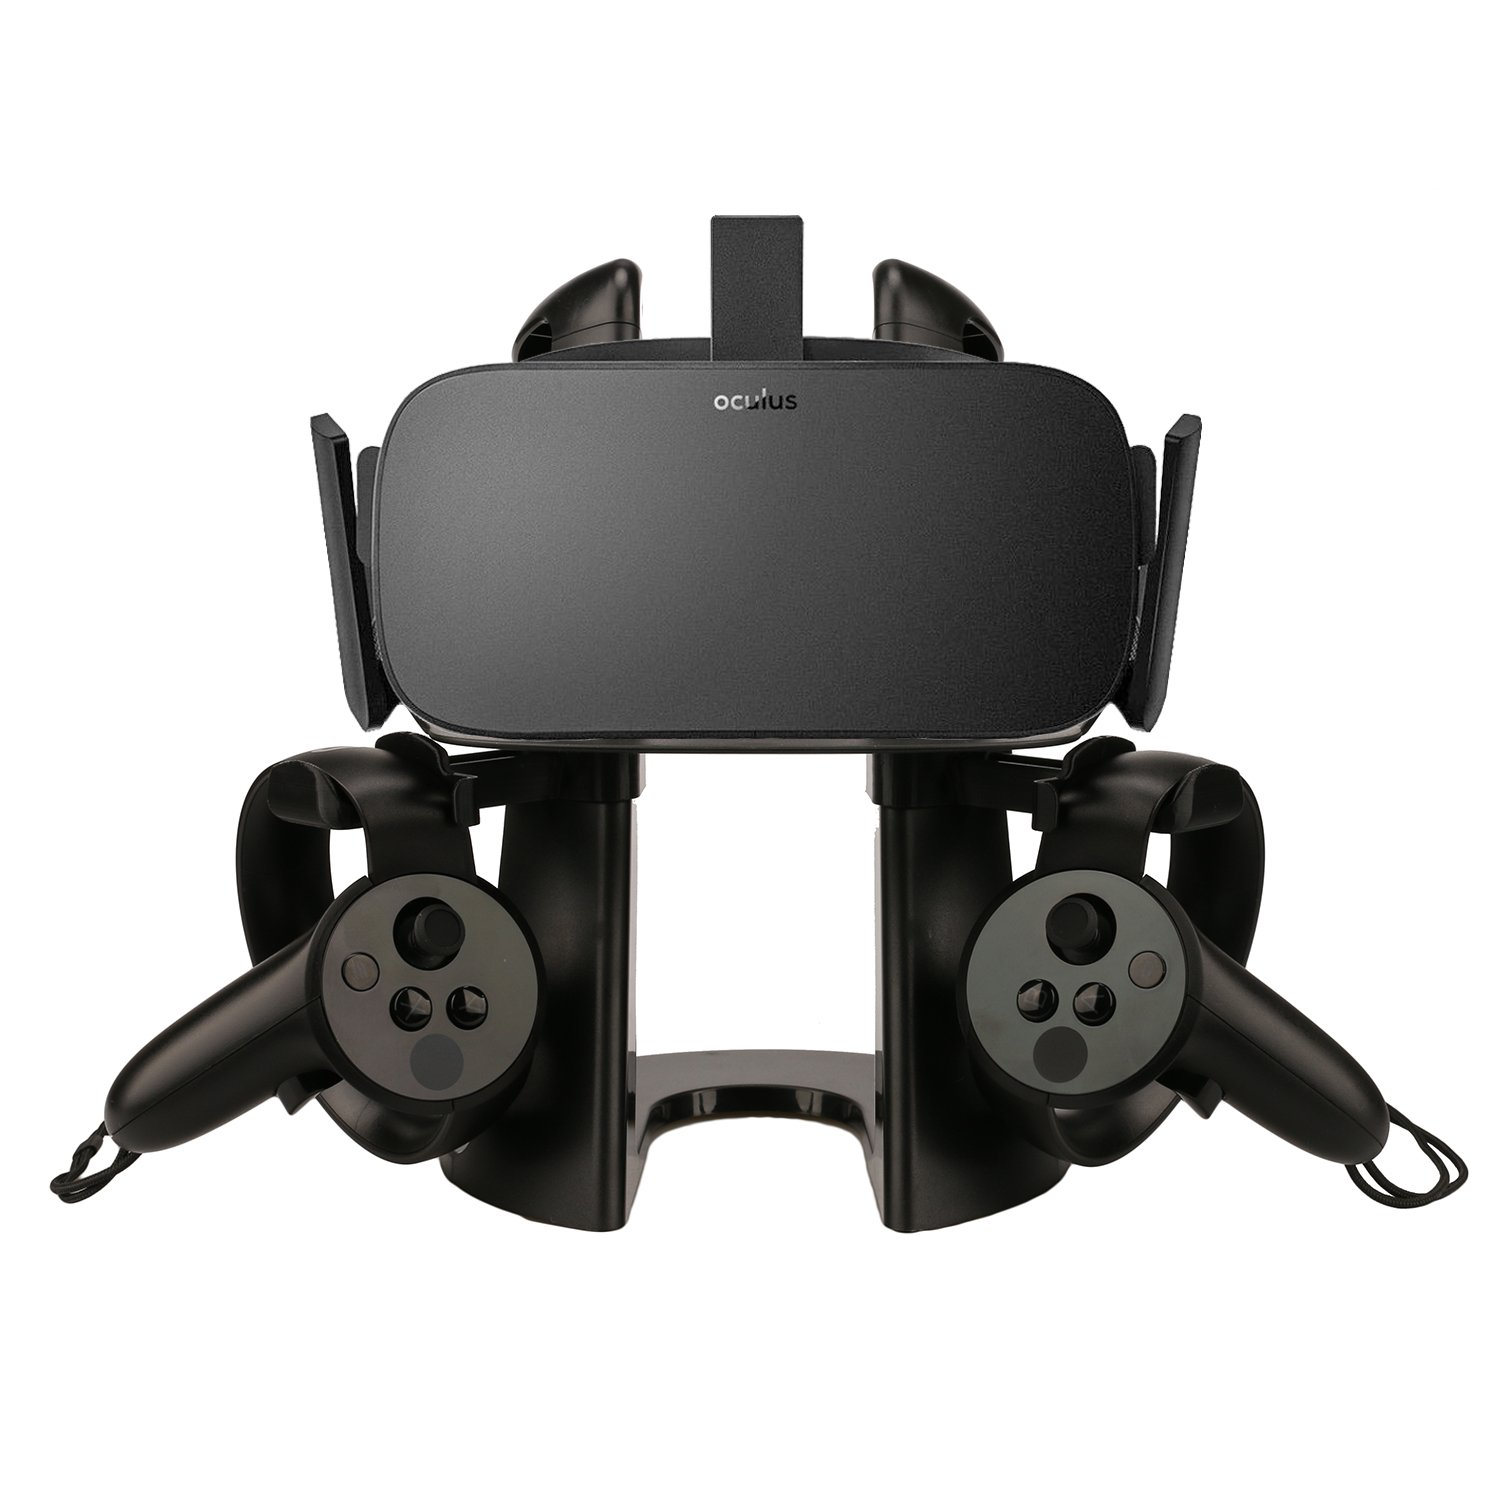 AMVR VR Stand,Headset Display Holder for Oculus Rift or Rift S Headset and Touch Controller by M AMVR